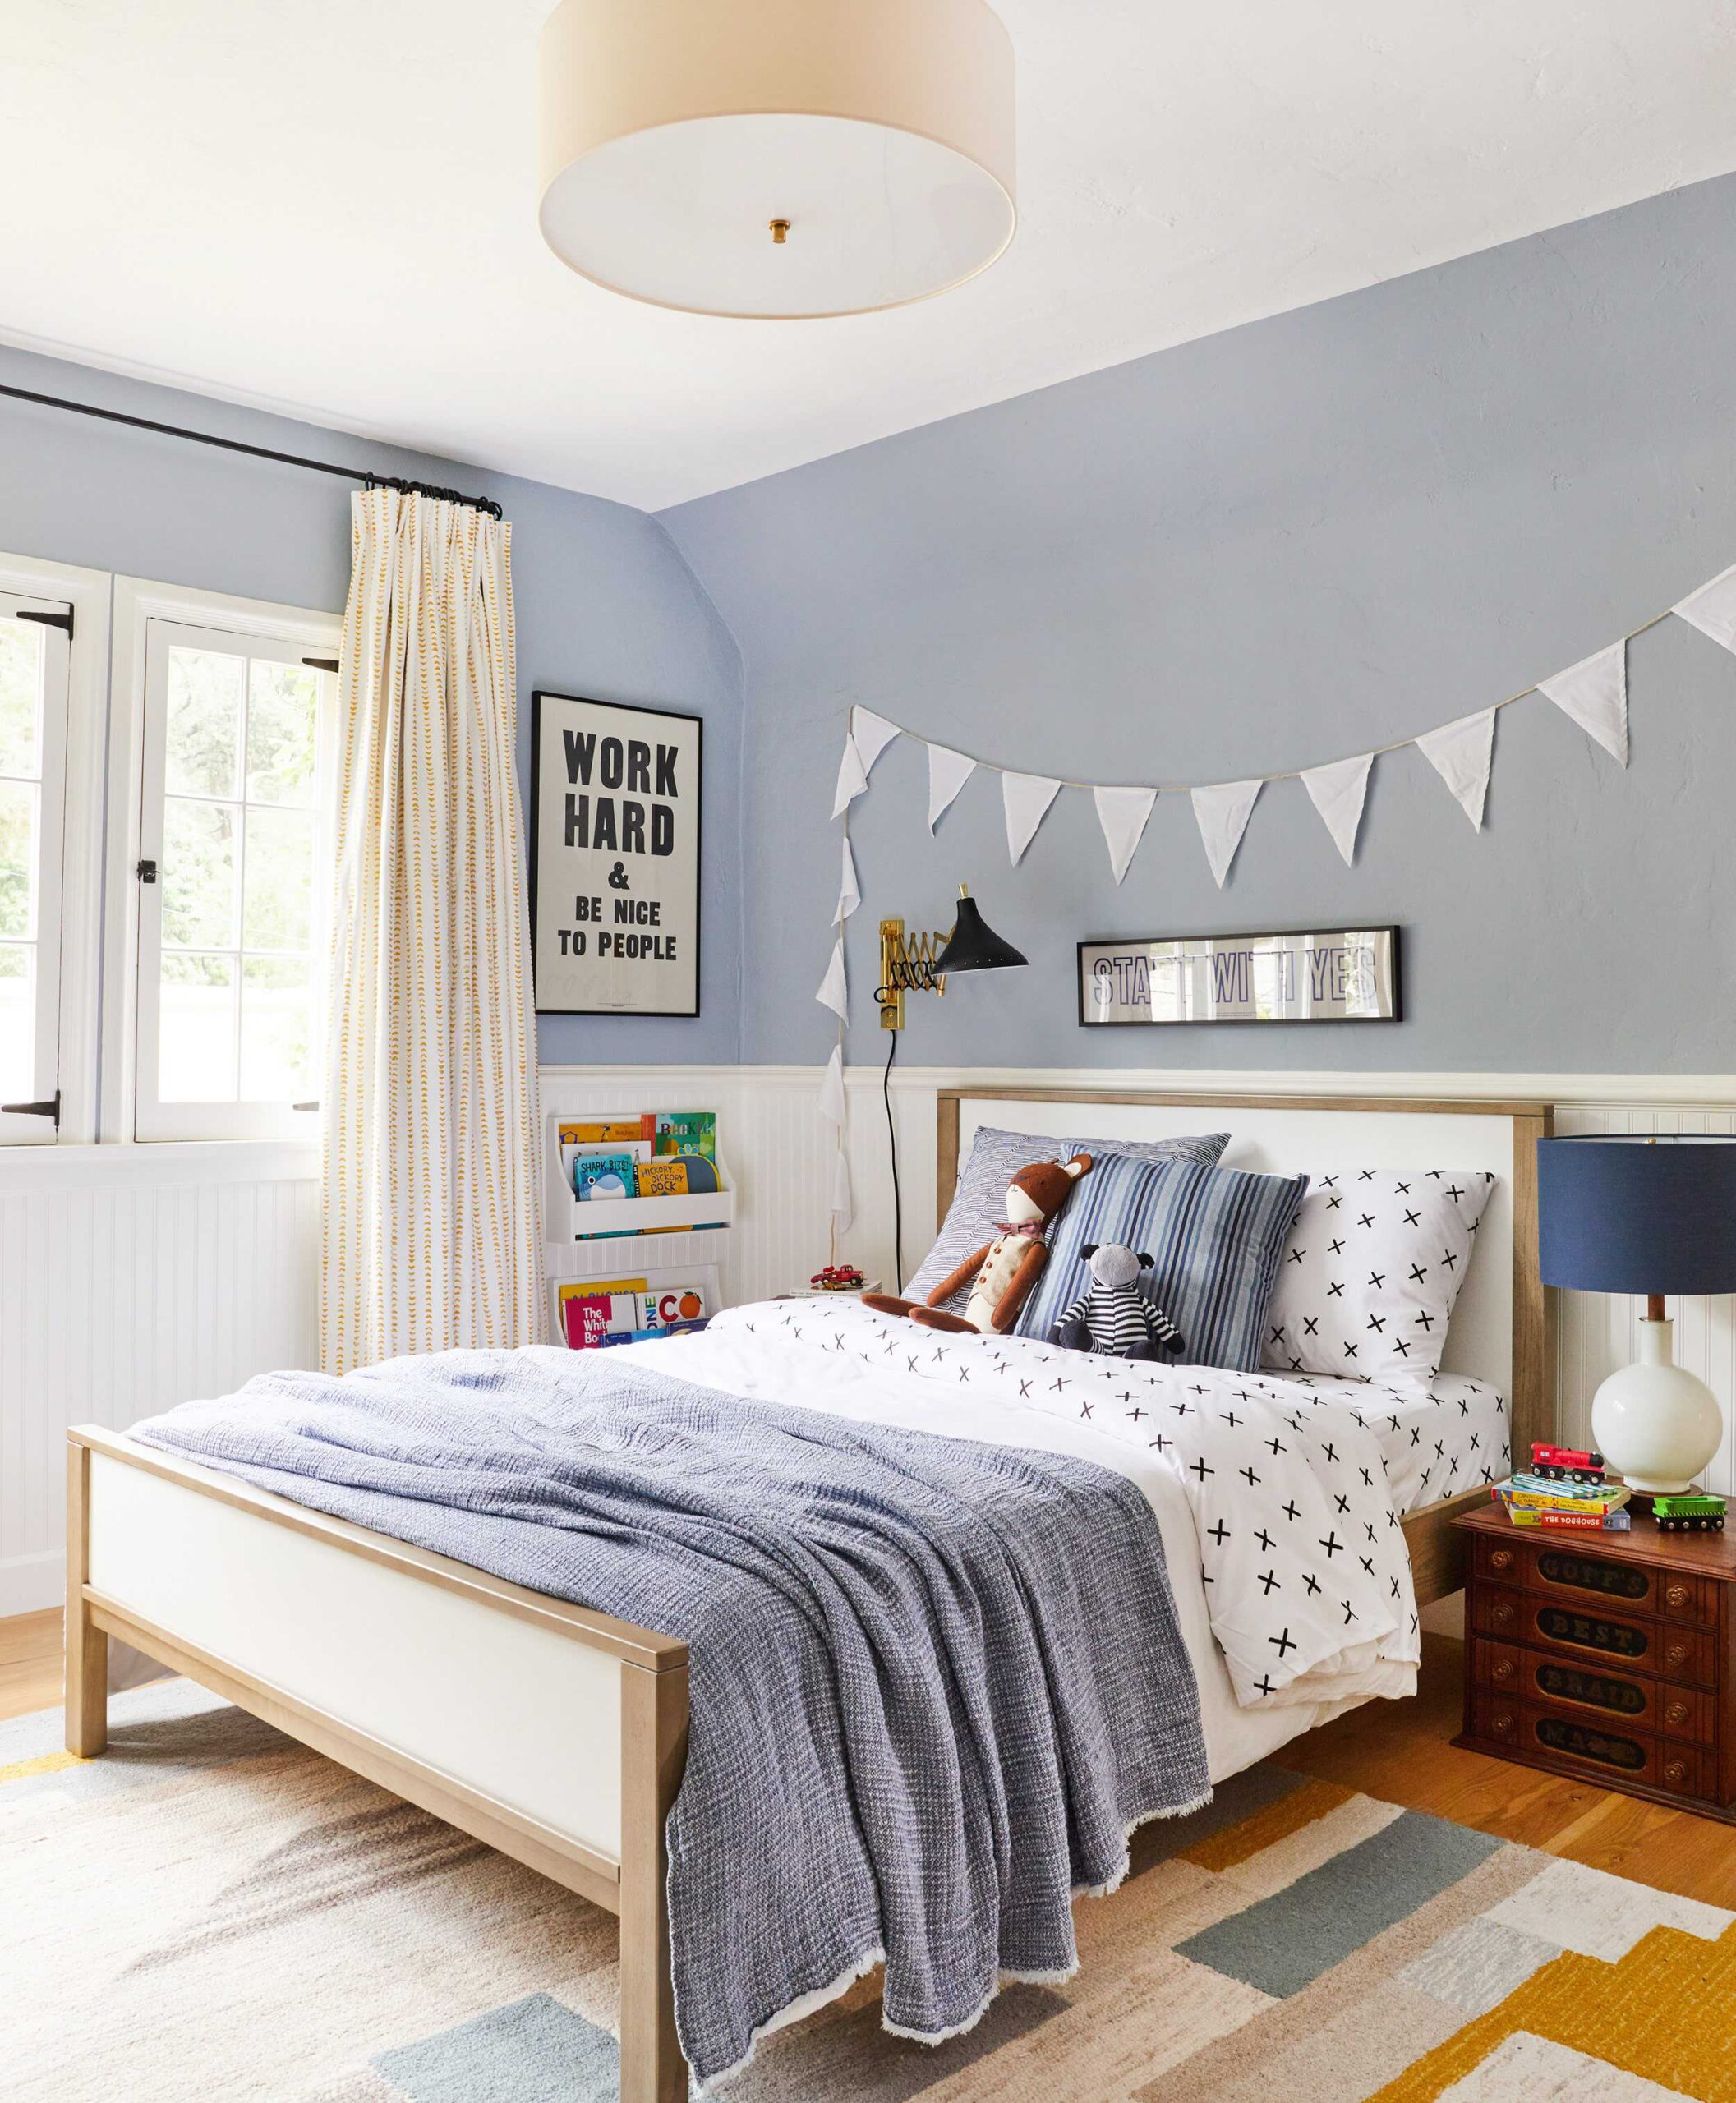 Our Kids Now Share A Room With Layout Challenges And A New Gender Neutral Theme Emily Henderson